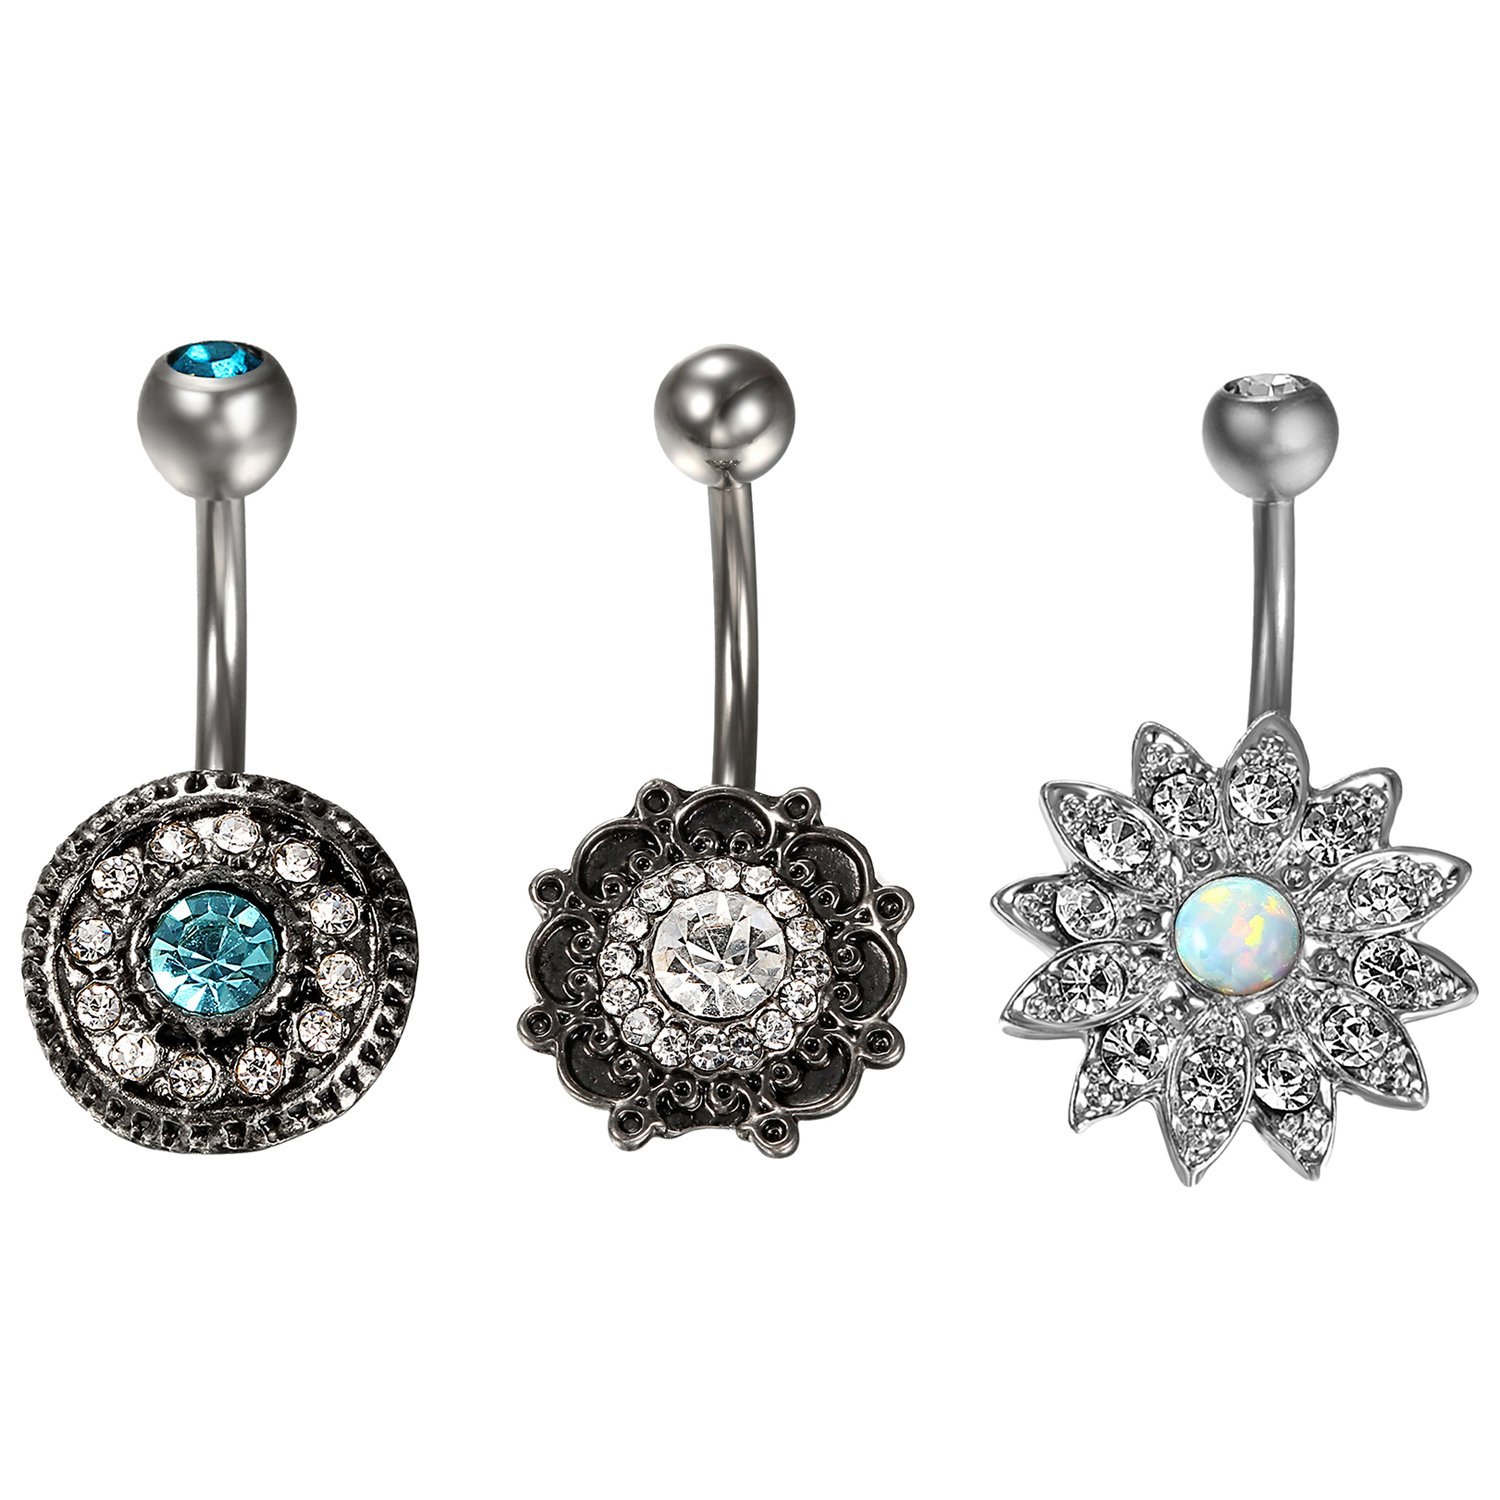 Cupimatch 3PCS Stainless Steel Belly Button Rings Cubic Zirconia Navel Bars Body Piercing Jewelry for Women C006001